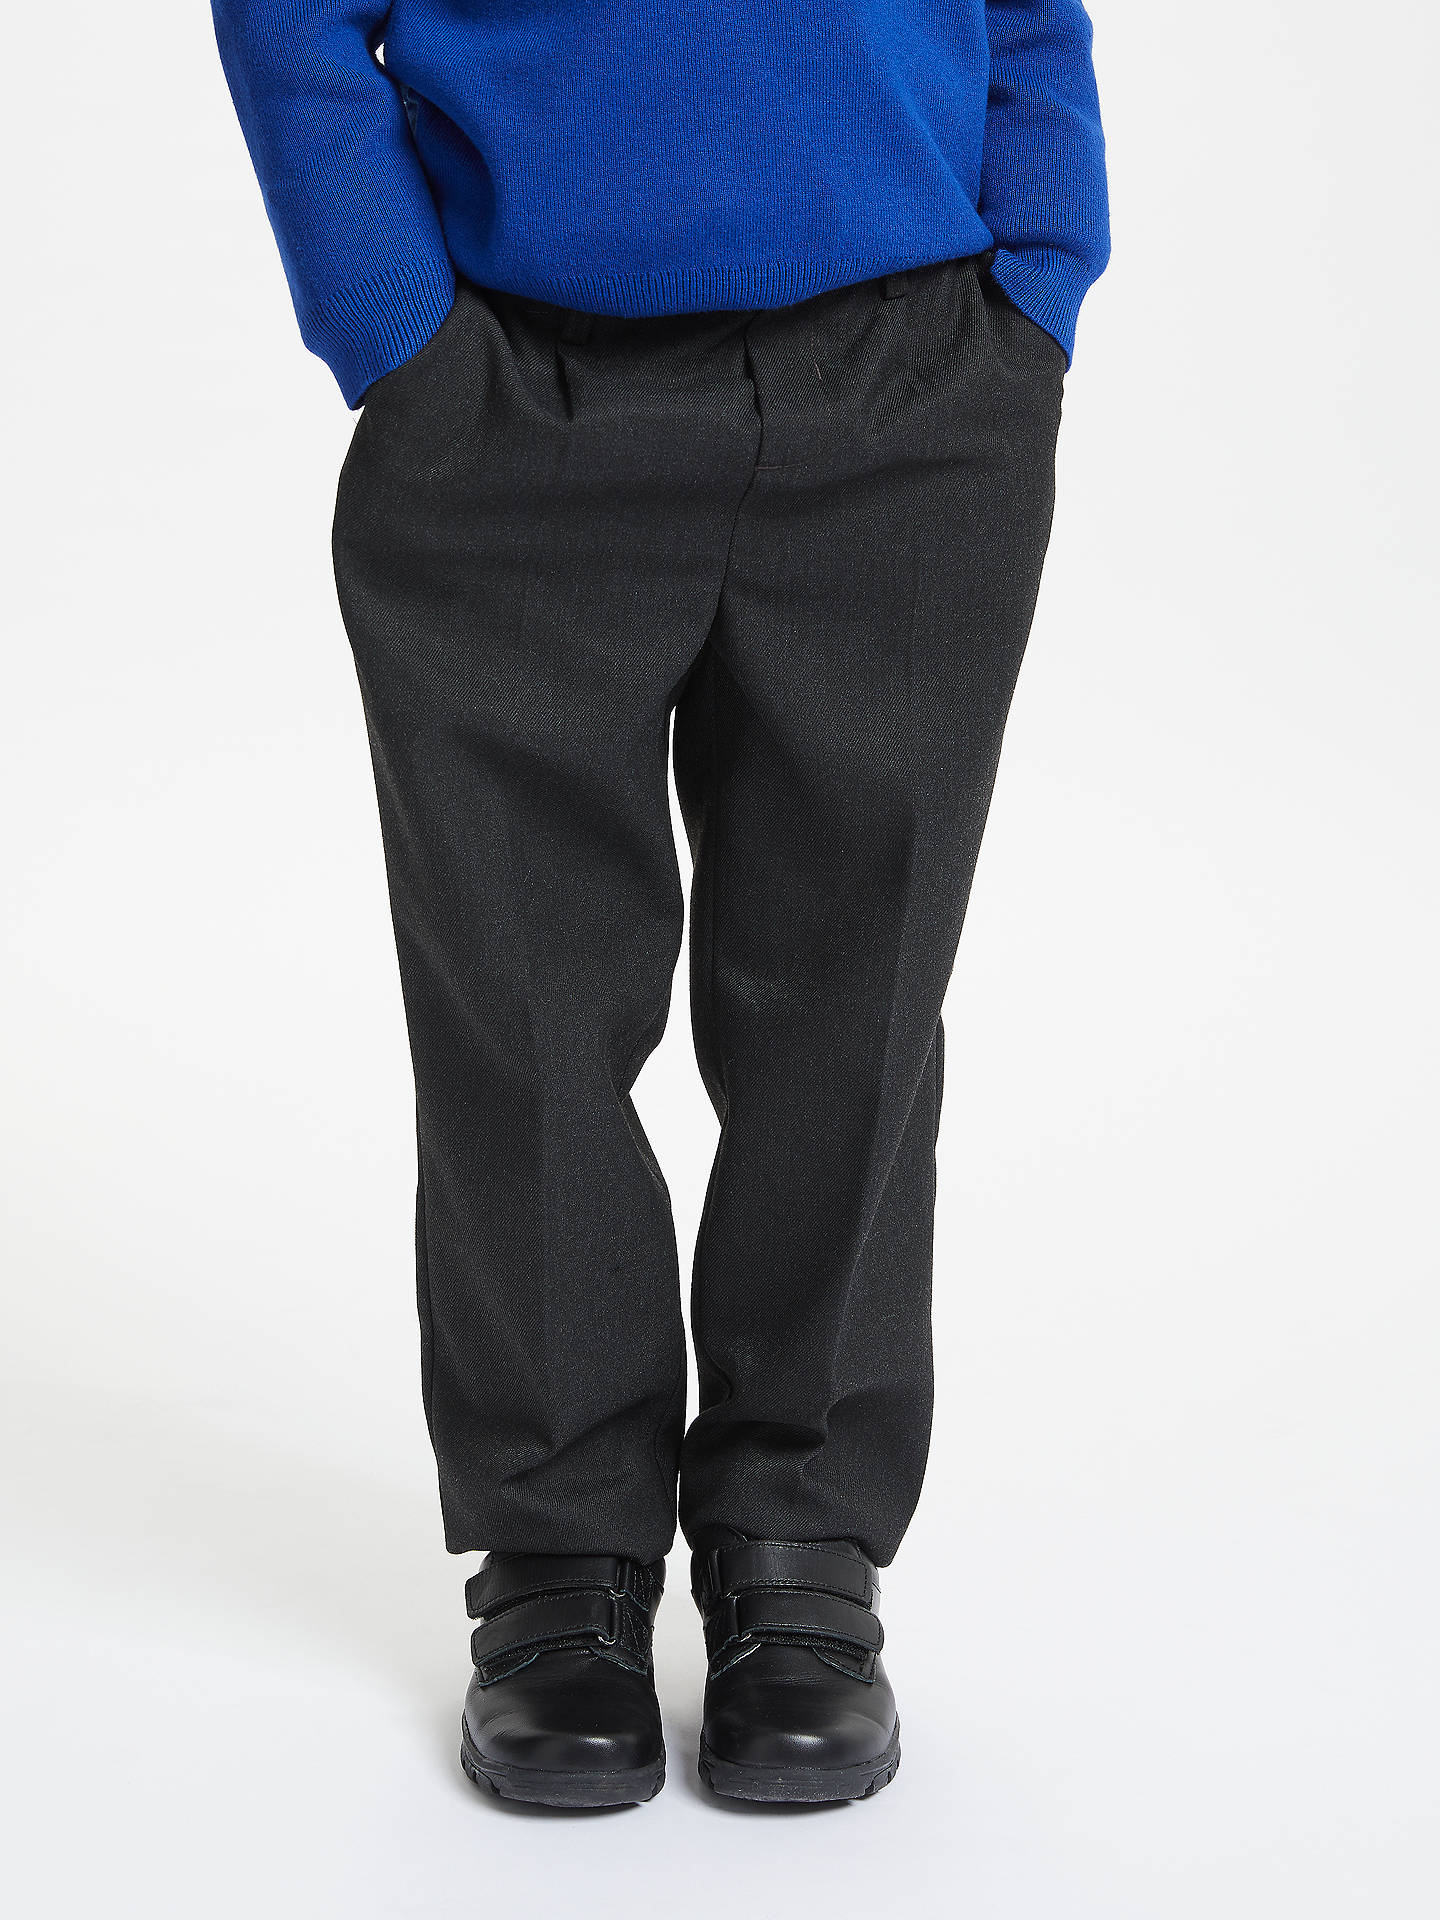 Buy John Lewis & Partners Boys' Regular Fit Adjustable Waist School Trousers, Charcoal, 3 years Online at johnlewis.com